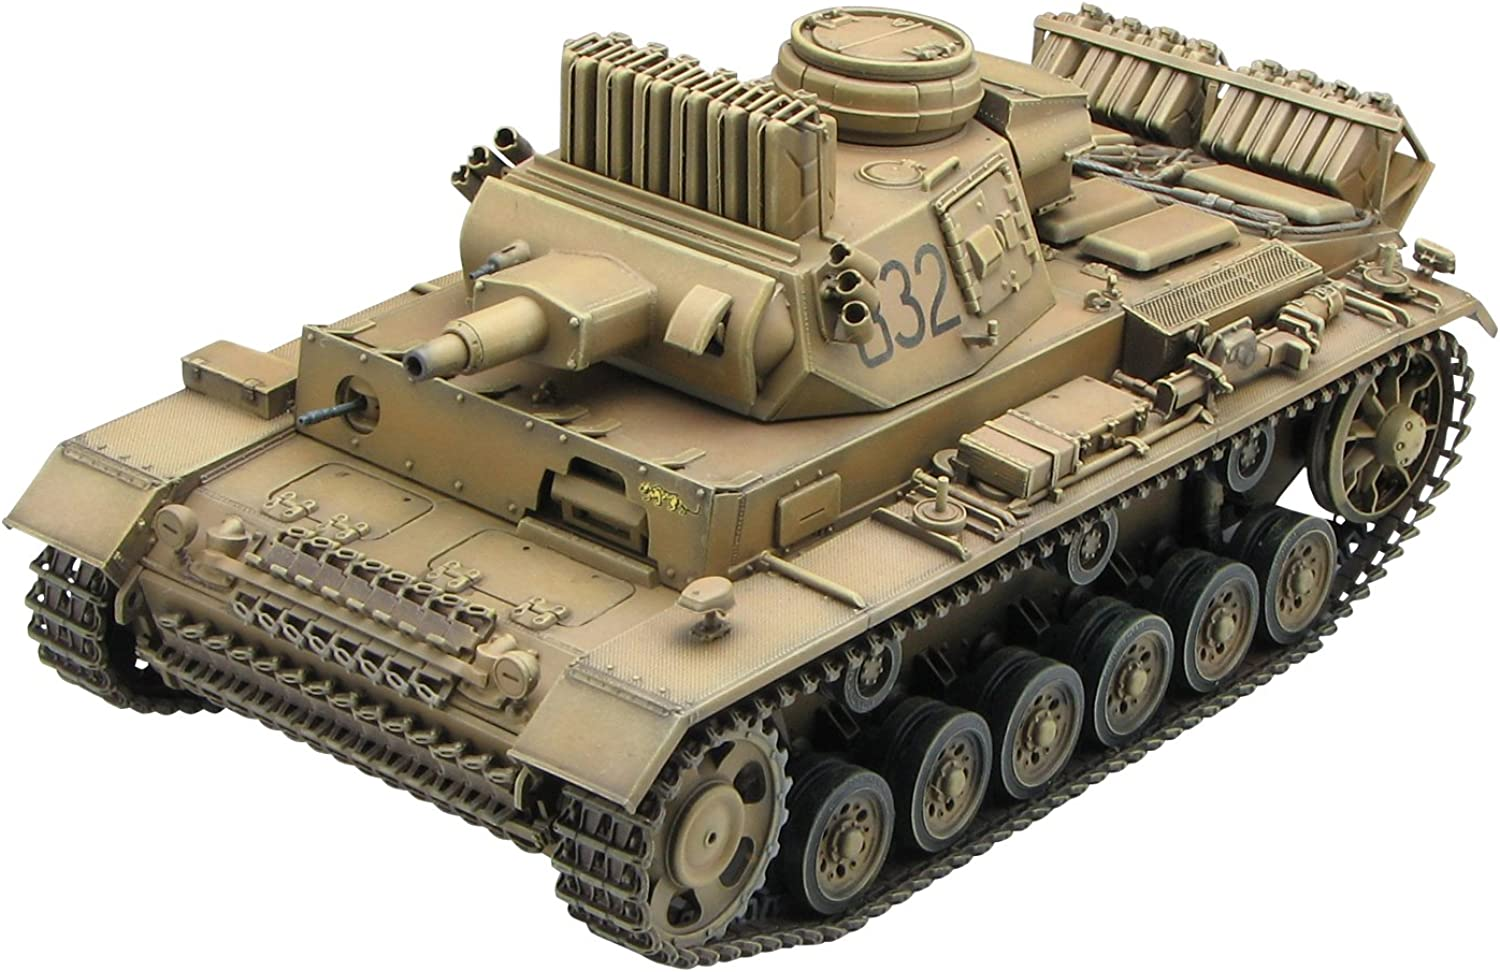 Dragon 1 35 Pz.Kpfw.III Ausf.N   6431  Plastic Model Kit